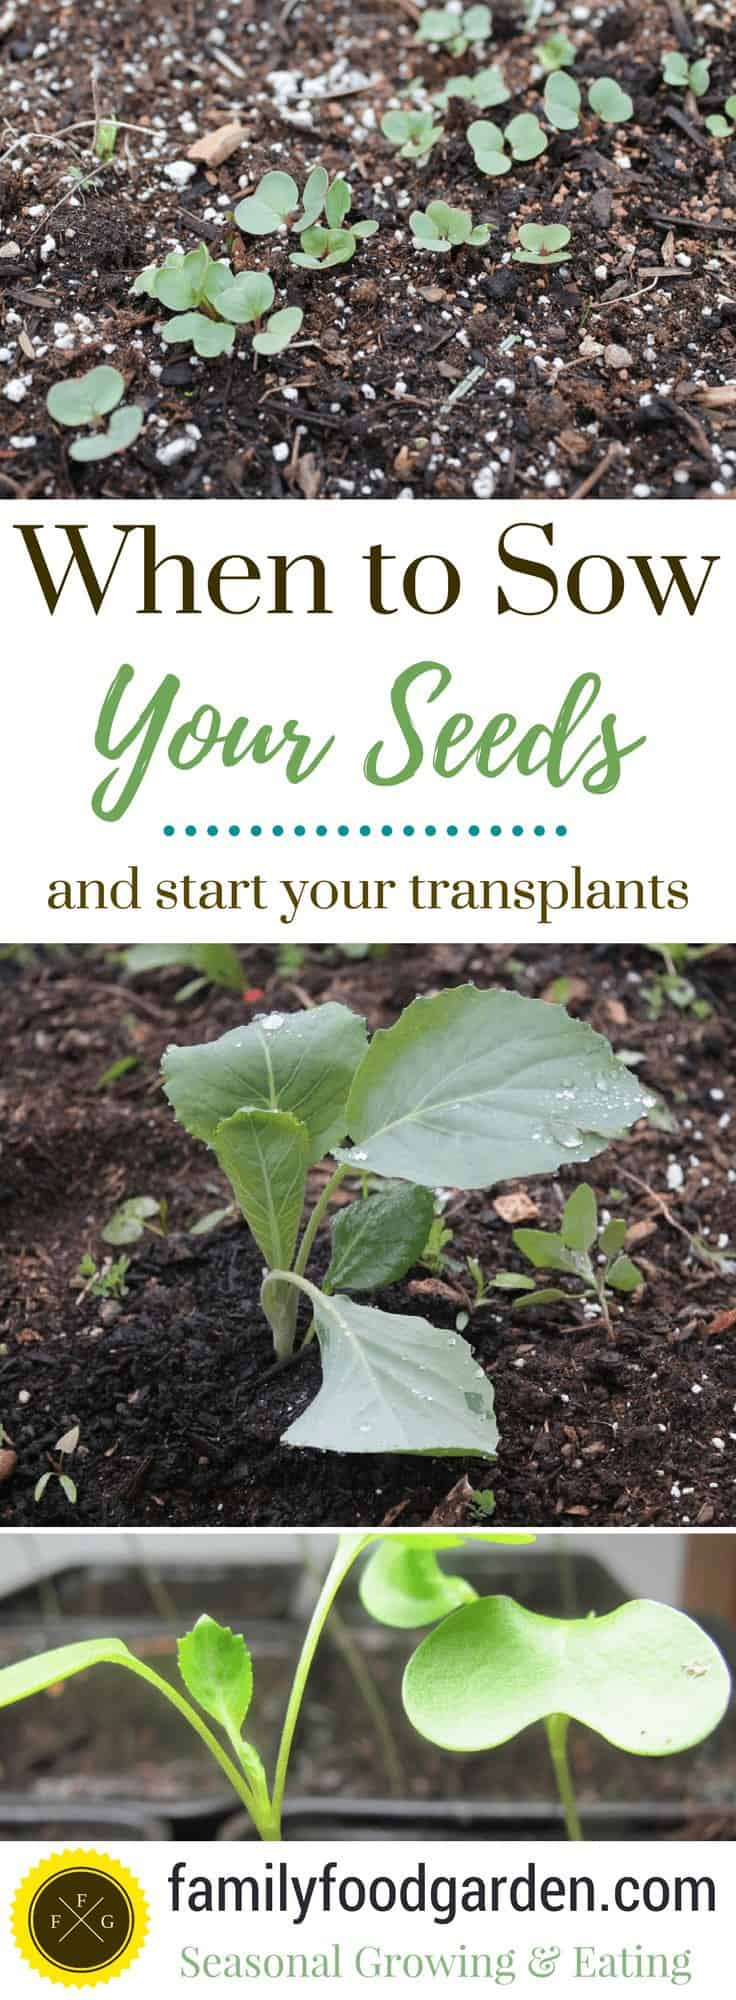 When To Plant Seeds Indoors Or Outside Family Food Garden Planting Seeds Indoors When To Plant Seeds Starting Seeds Indoors